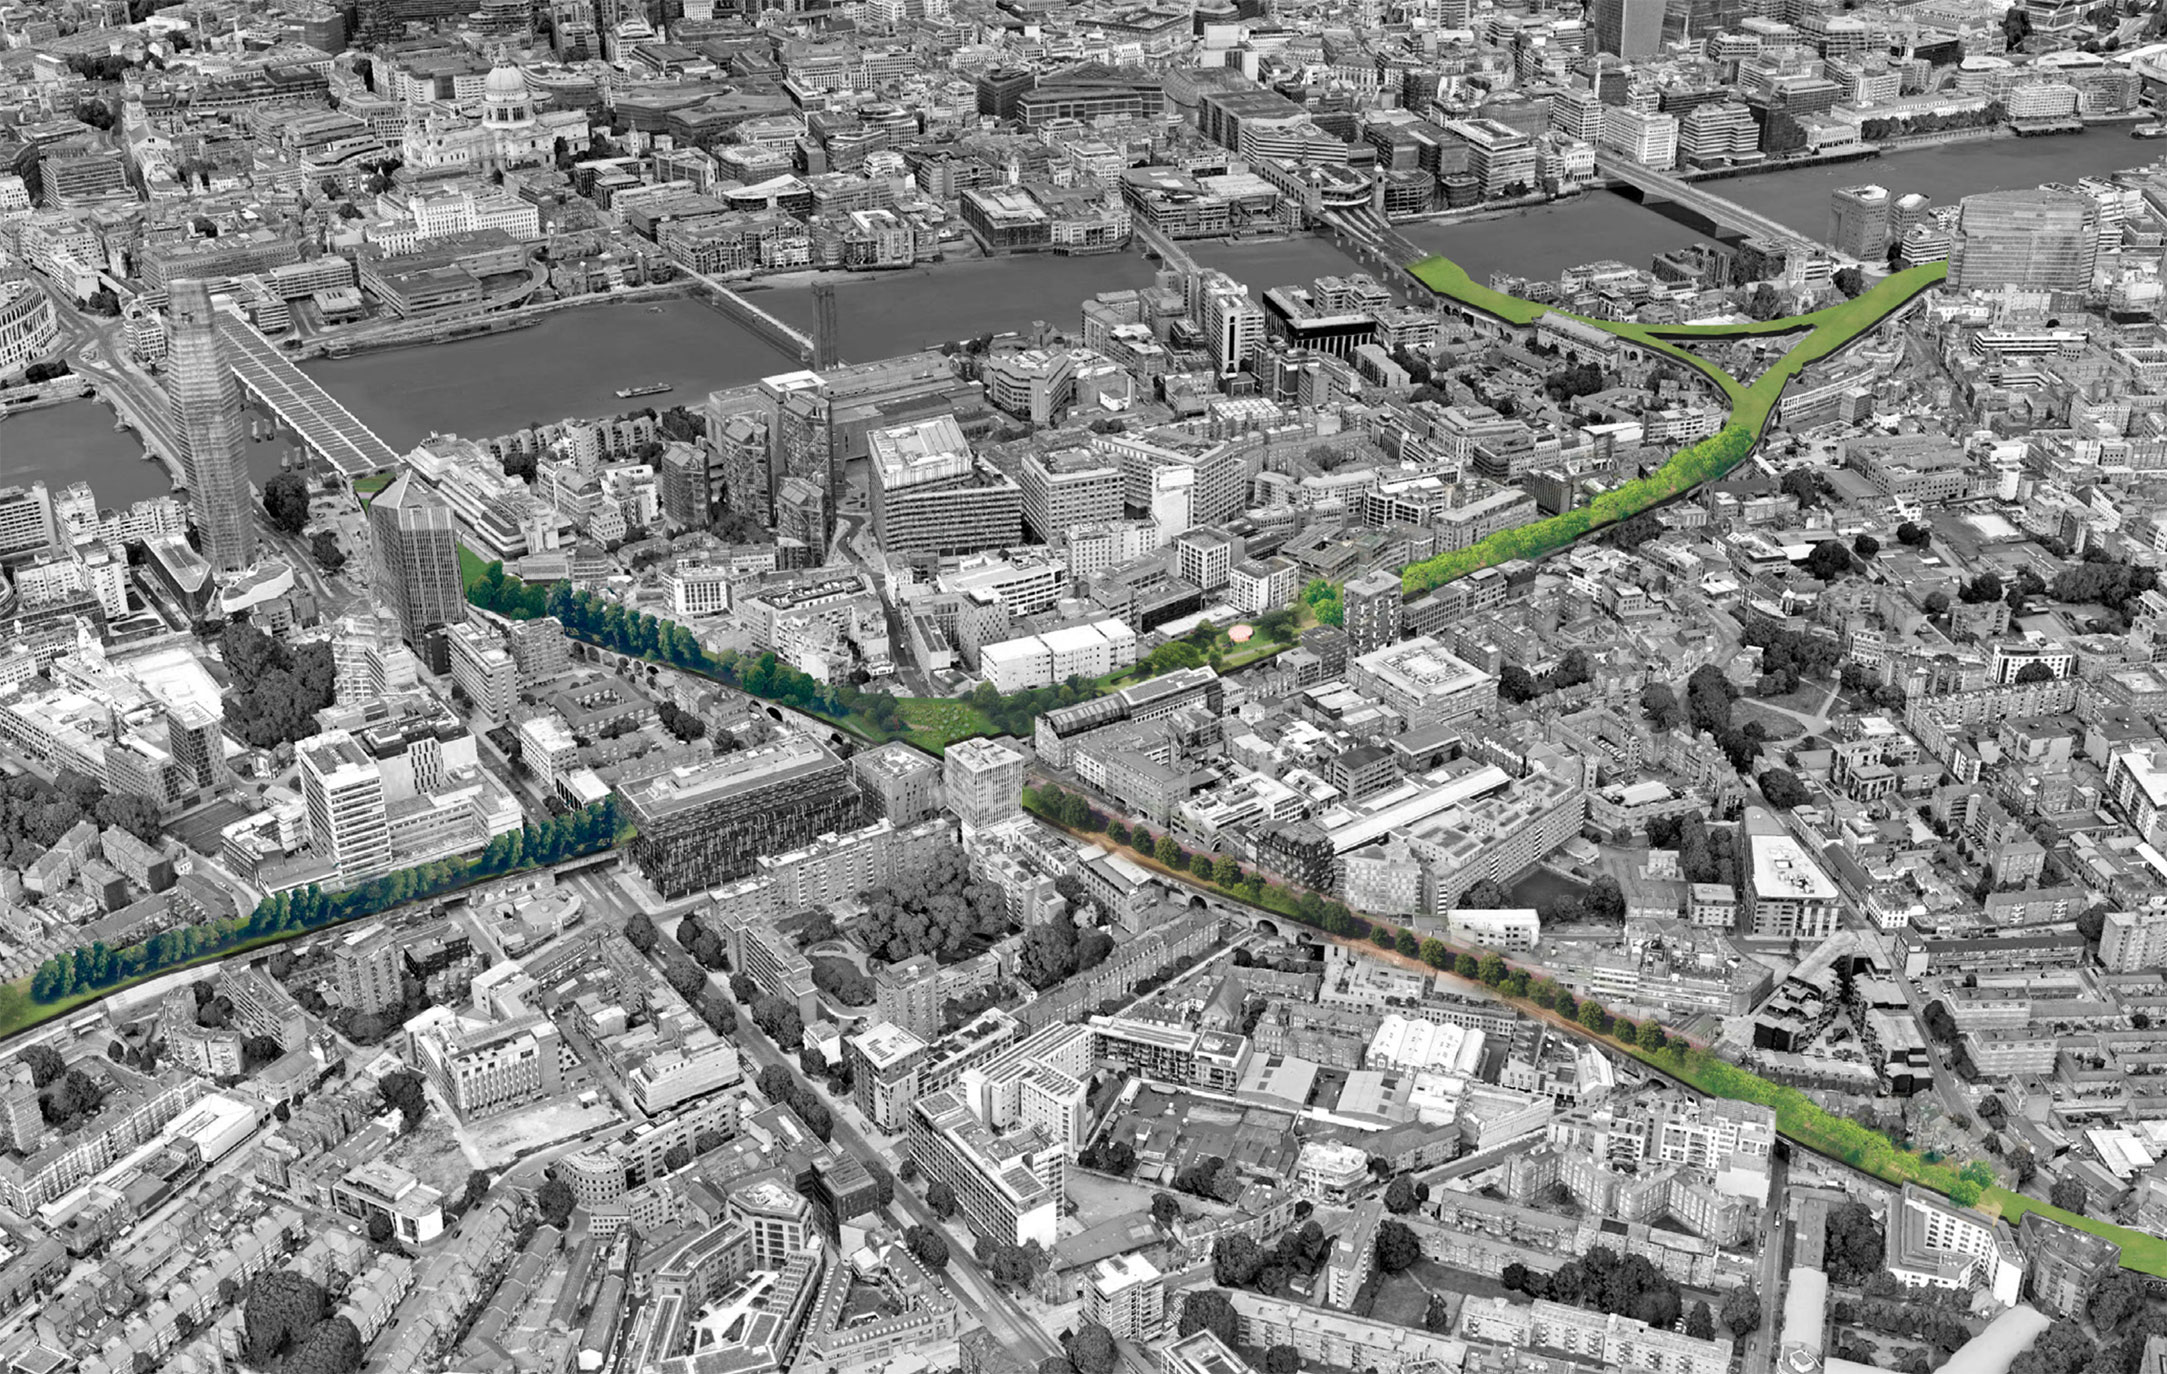 London's existing railway network could be transformed into a 'river of green' providing walking and cycling routes between major transport hubs.